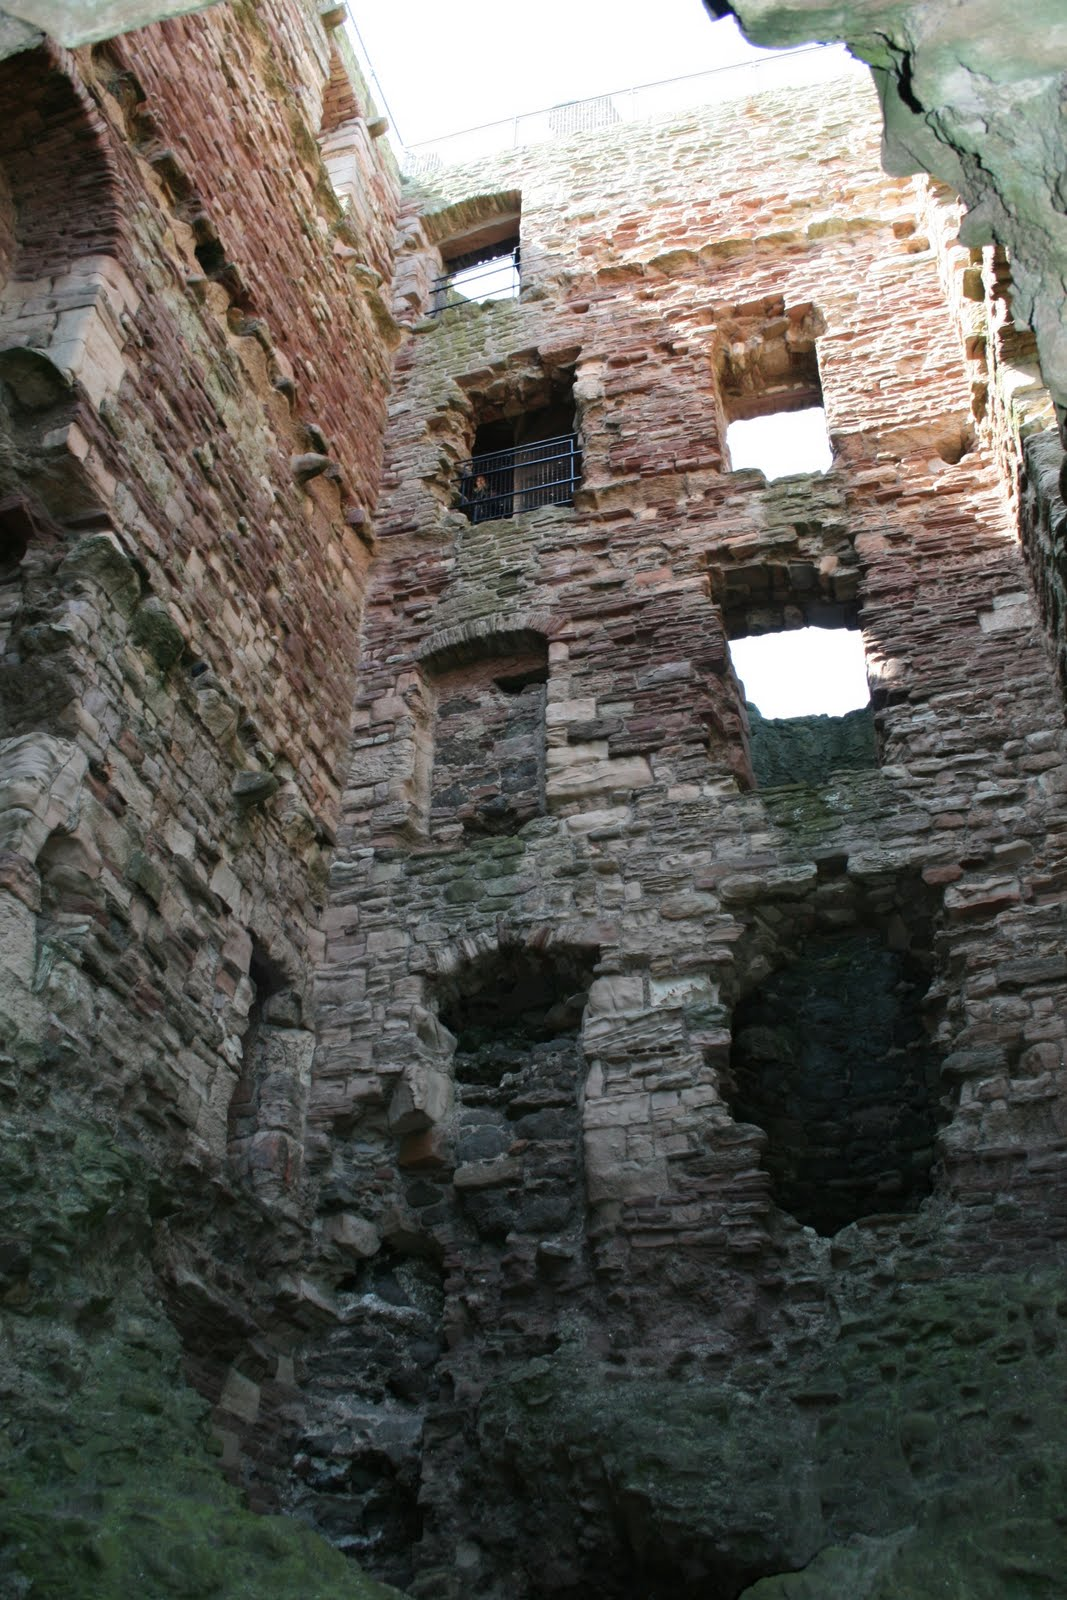 Most Convincing Real Ghost Photo shot at Tantallon Castle in Scotland